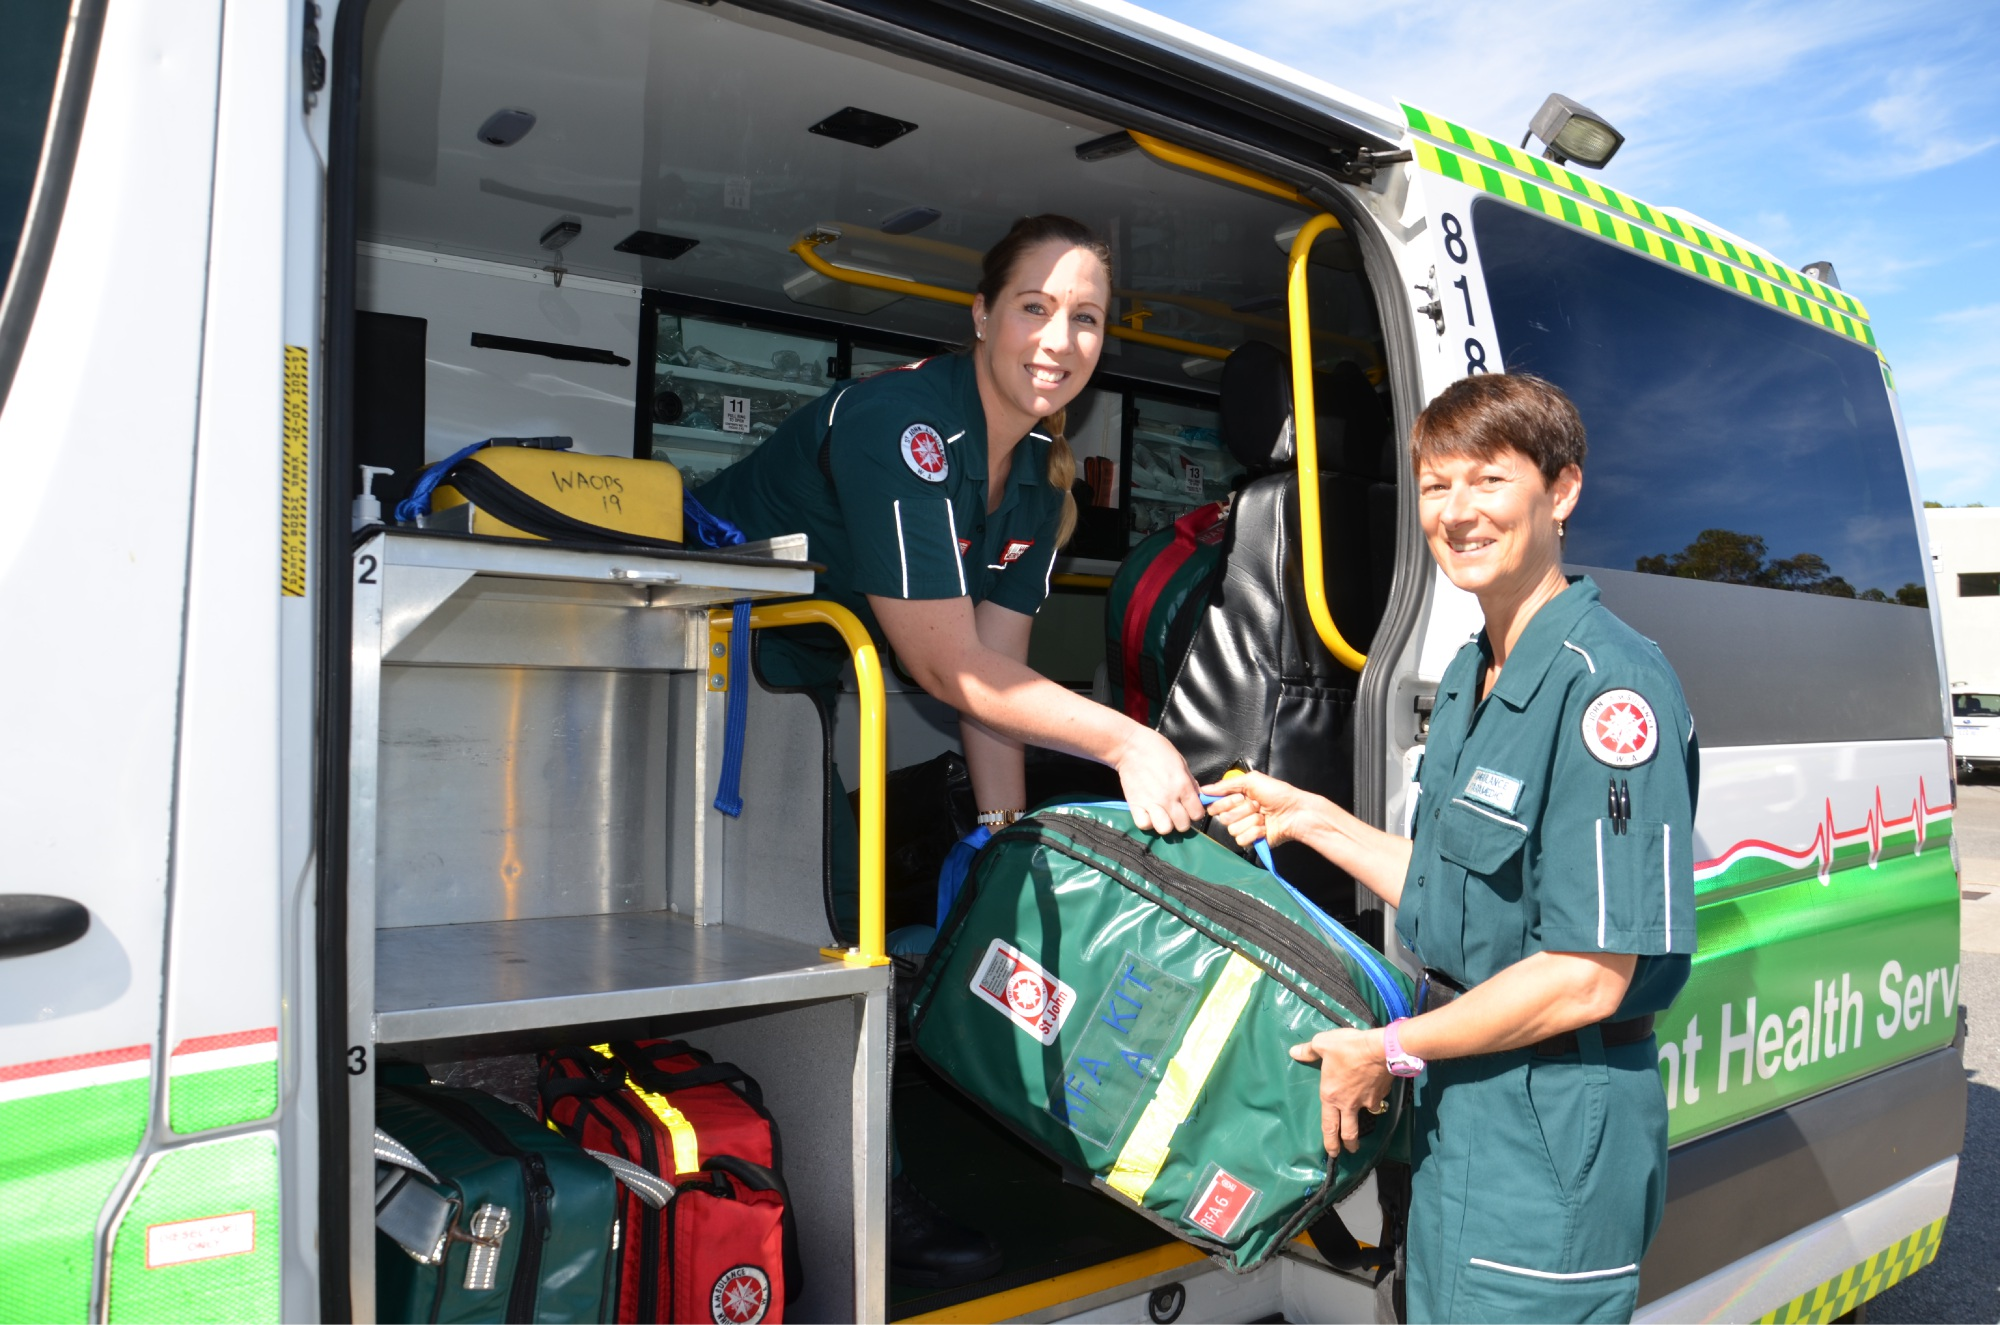 L-R: Melissa Rorke and Alex Maher from St John Ambulance prepare equipment for the Avon Descent. Photo: supplied